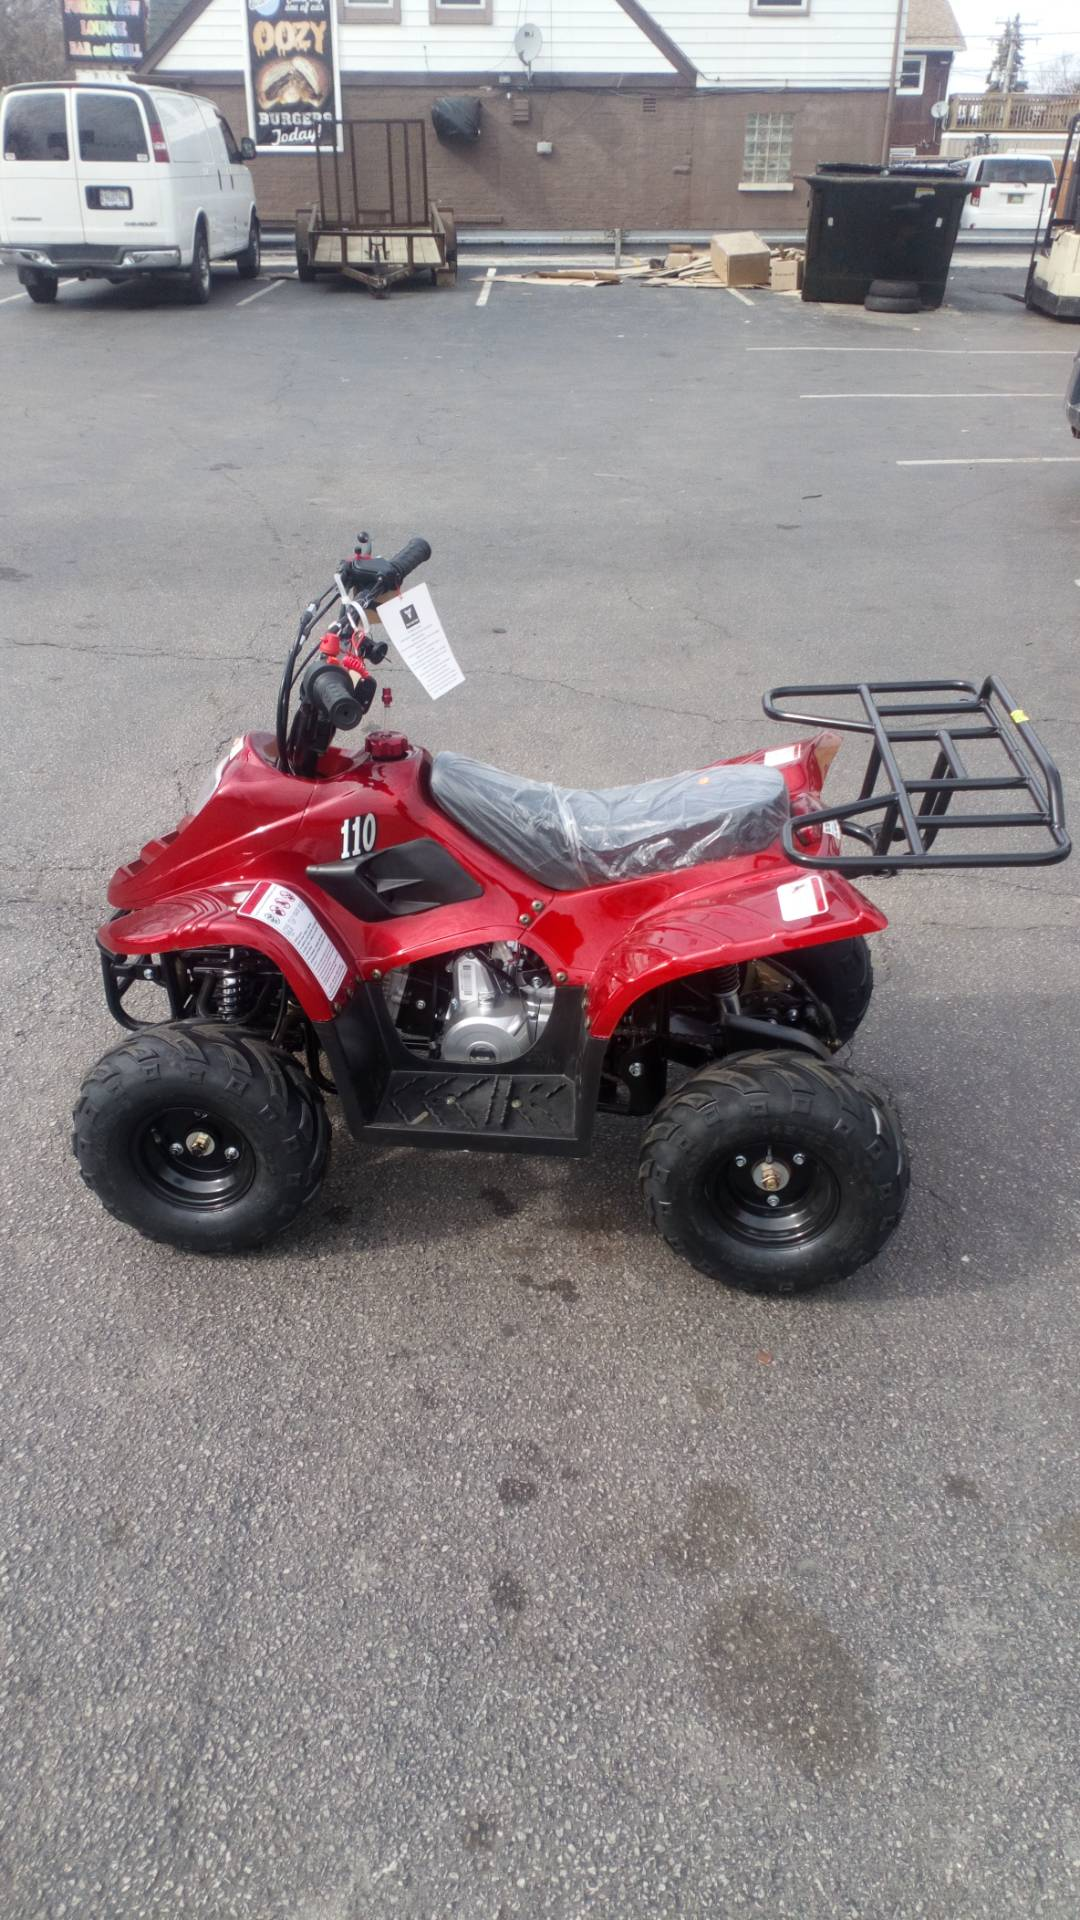 2018 Taotao USA ATV 110cc in Forest View, Illinois - Photo 2